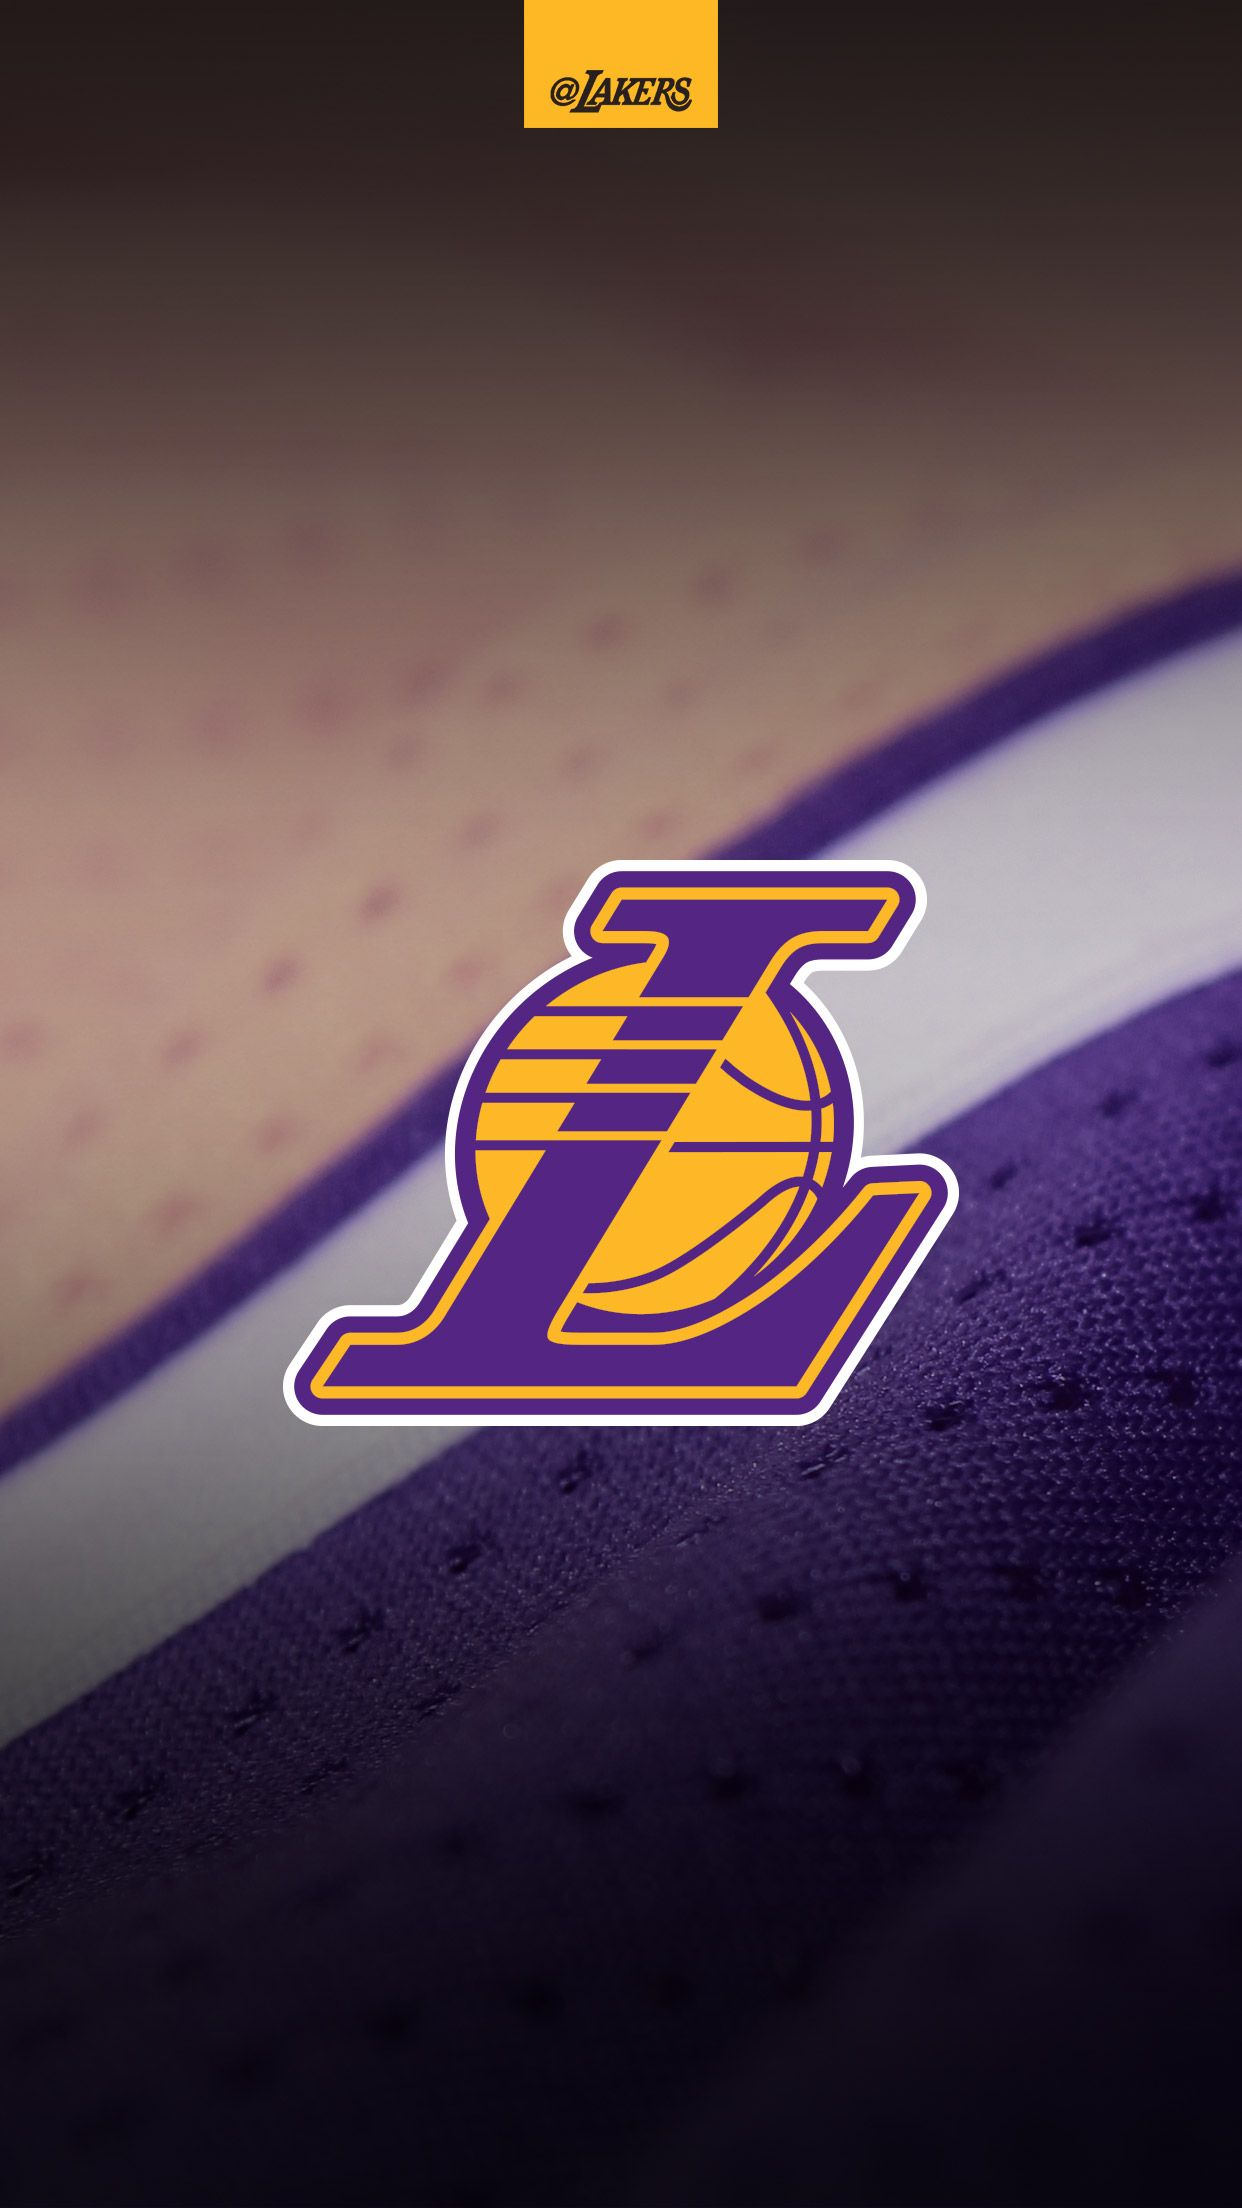 Lakers Wallpaper Iphone 6